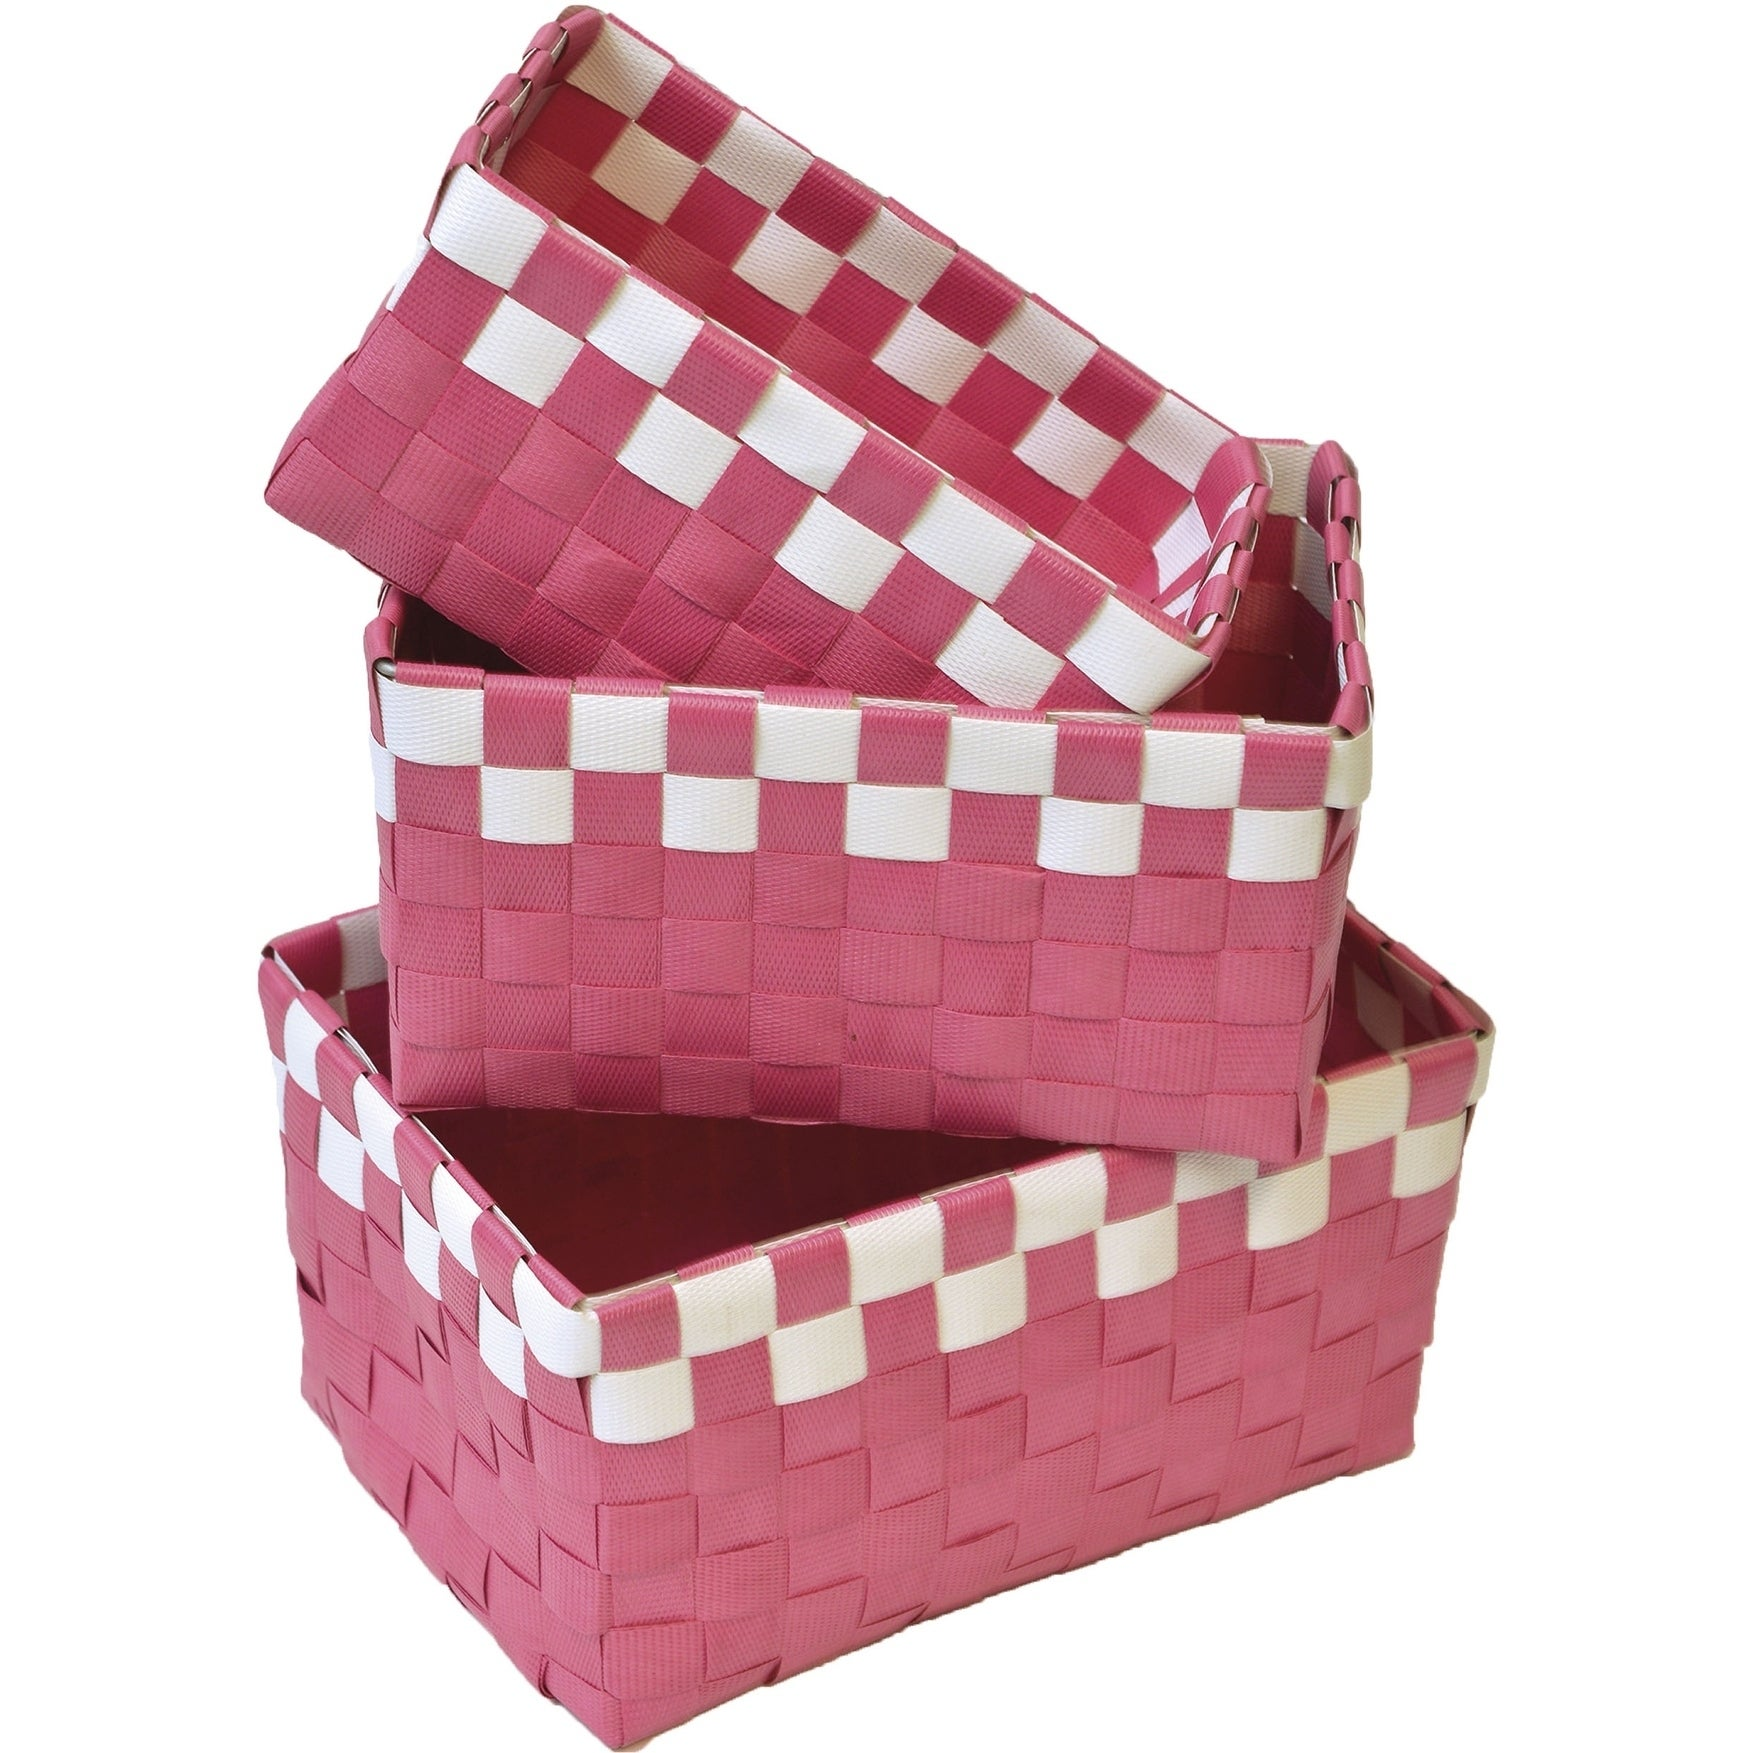 Shop Checkered Woven Strap Storage Baskets Totes Set of 3 - Free ...